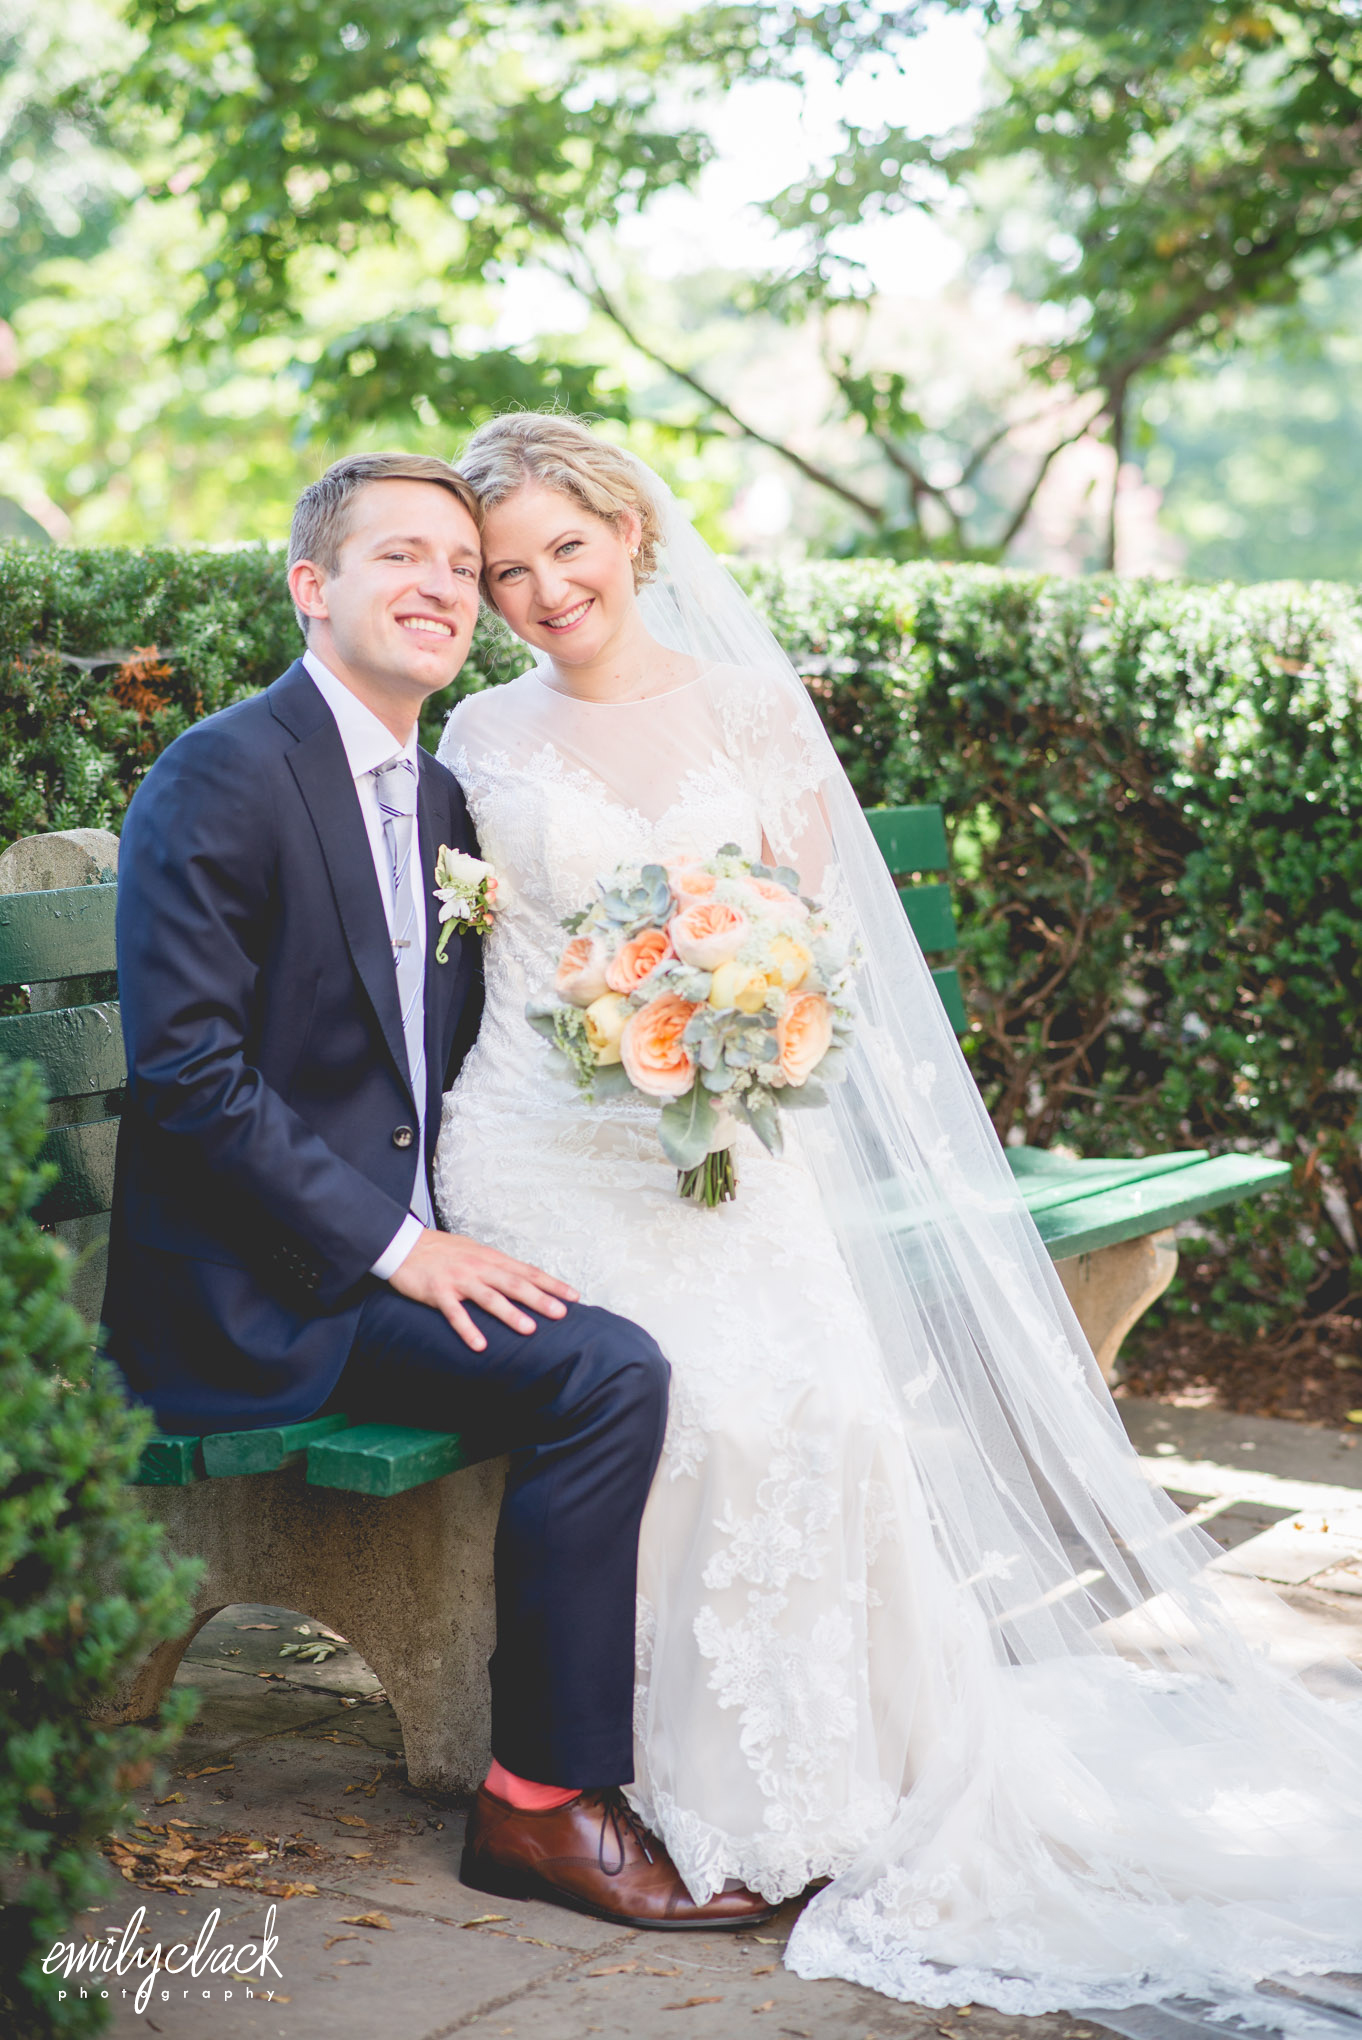 Katie + Doug on July 26, 2014 ♥ Emily Clack Photography at Dahlgren Chapel of the Sacred Heart (Georgetown University)